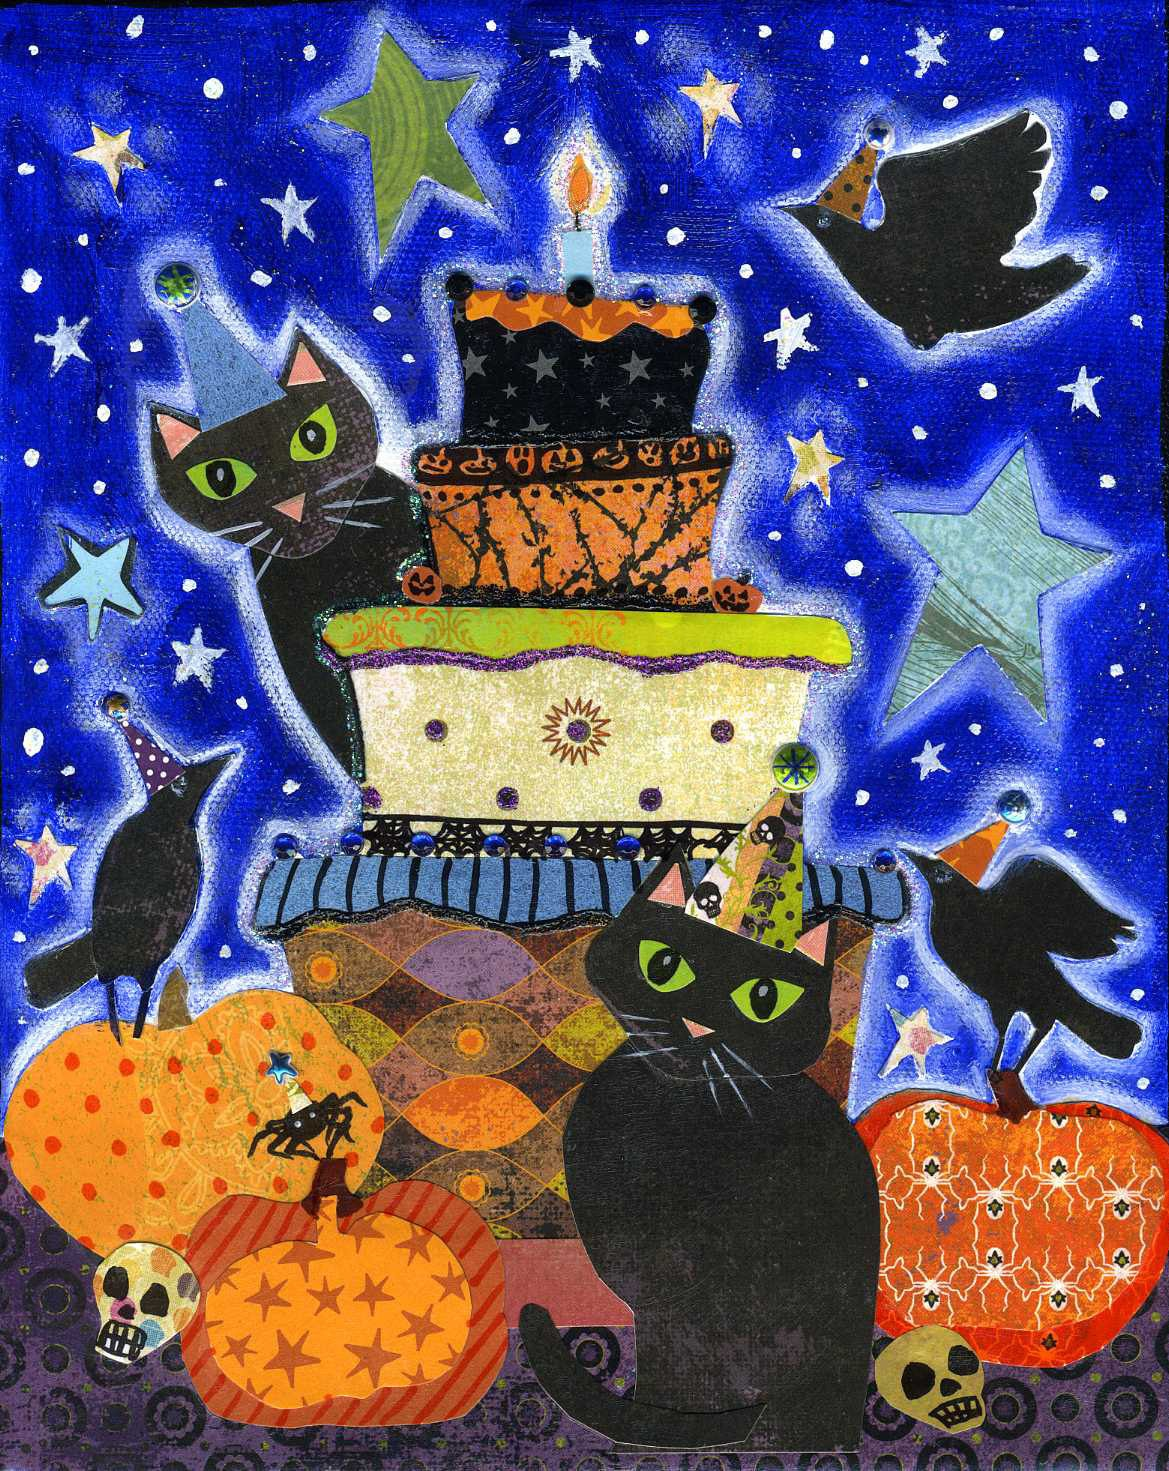 Living Room Decorating Ideas For Apartments For Cheap: Halloween Party 8x10 Colorful Whimsical Black Cat Raven